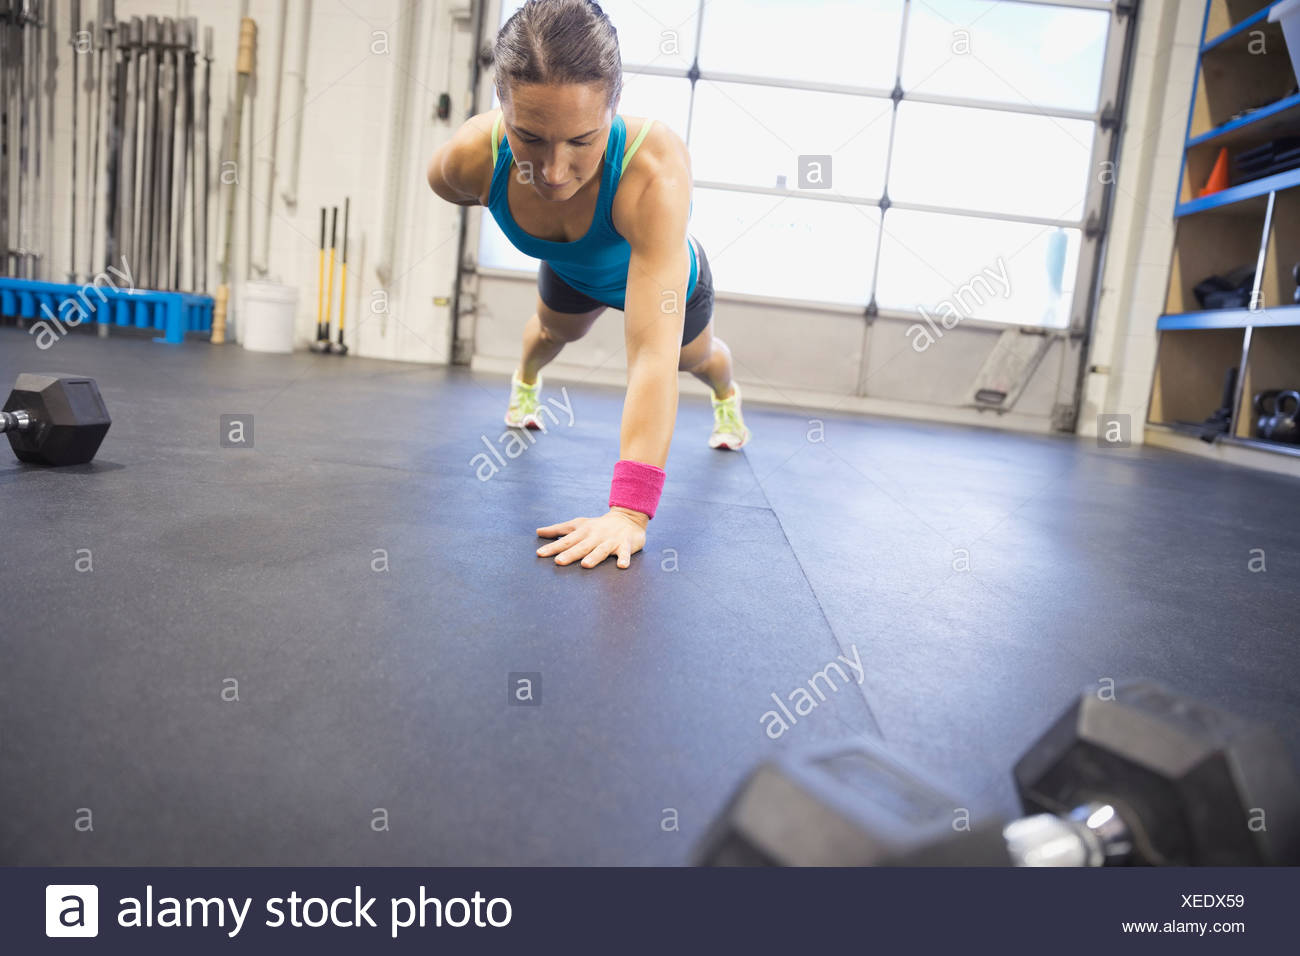 Determined woman doing one arm push-ups in gym - Stock Image